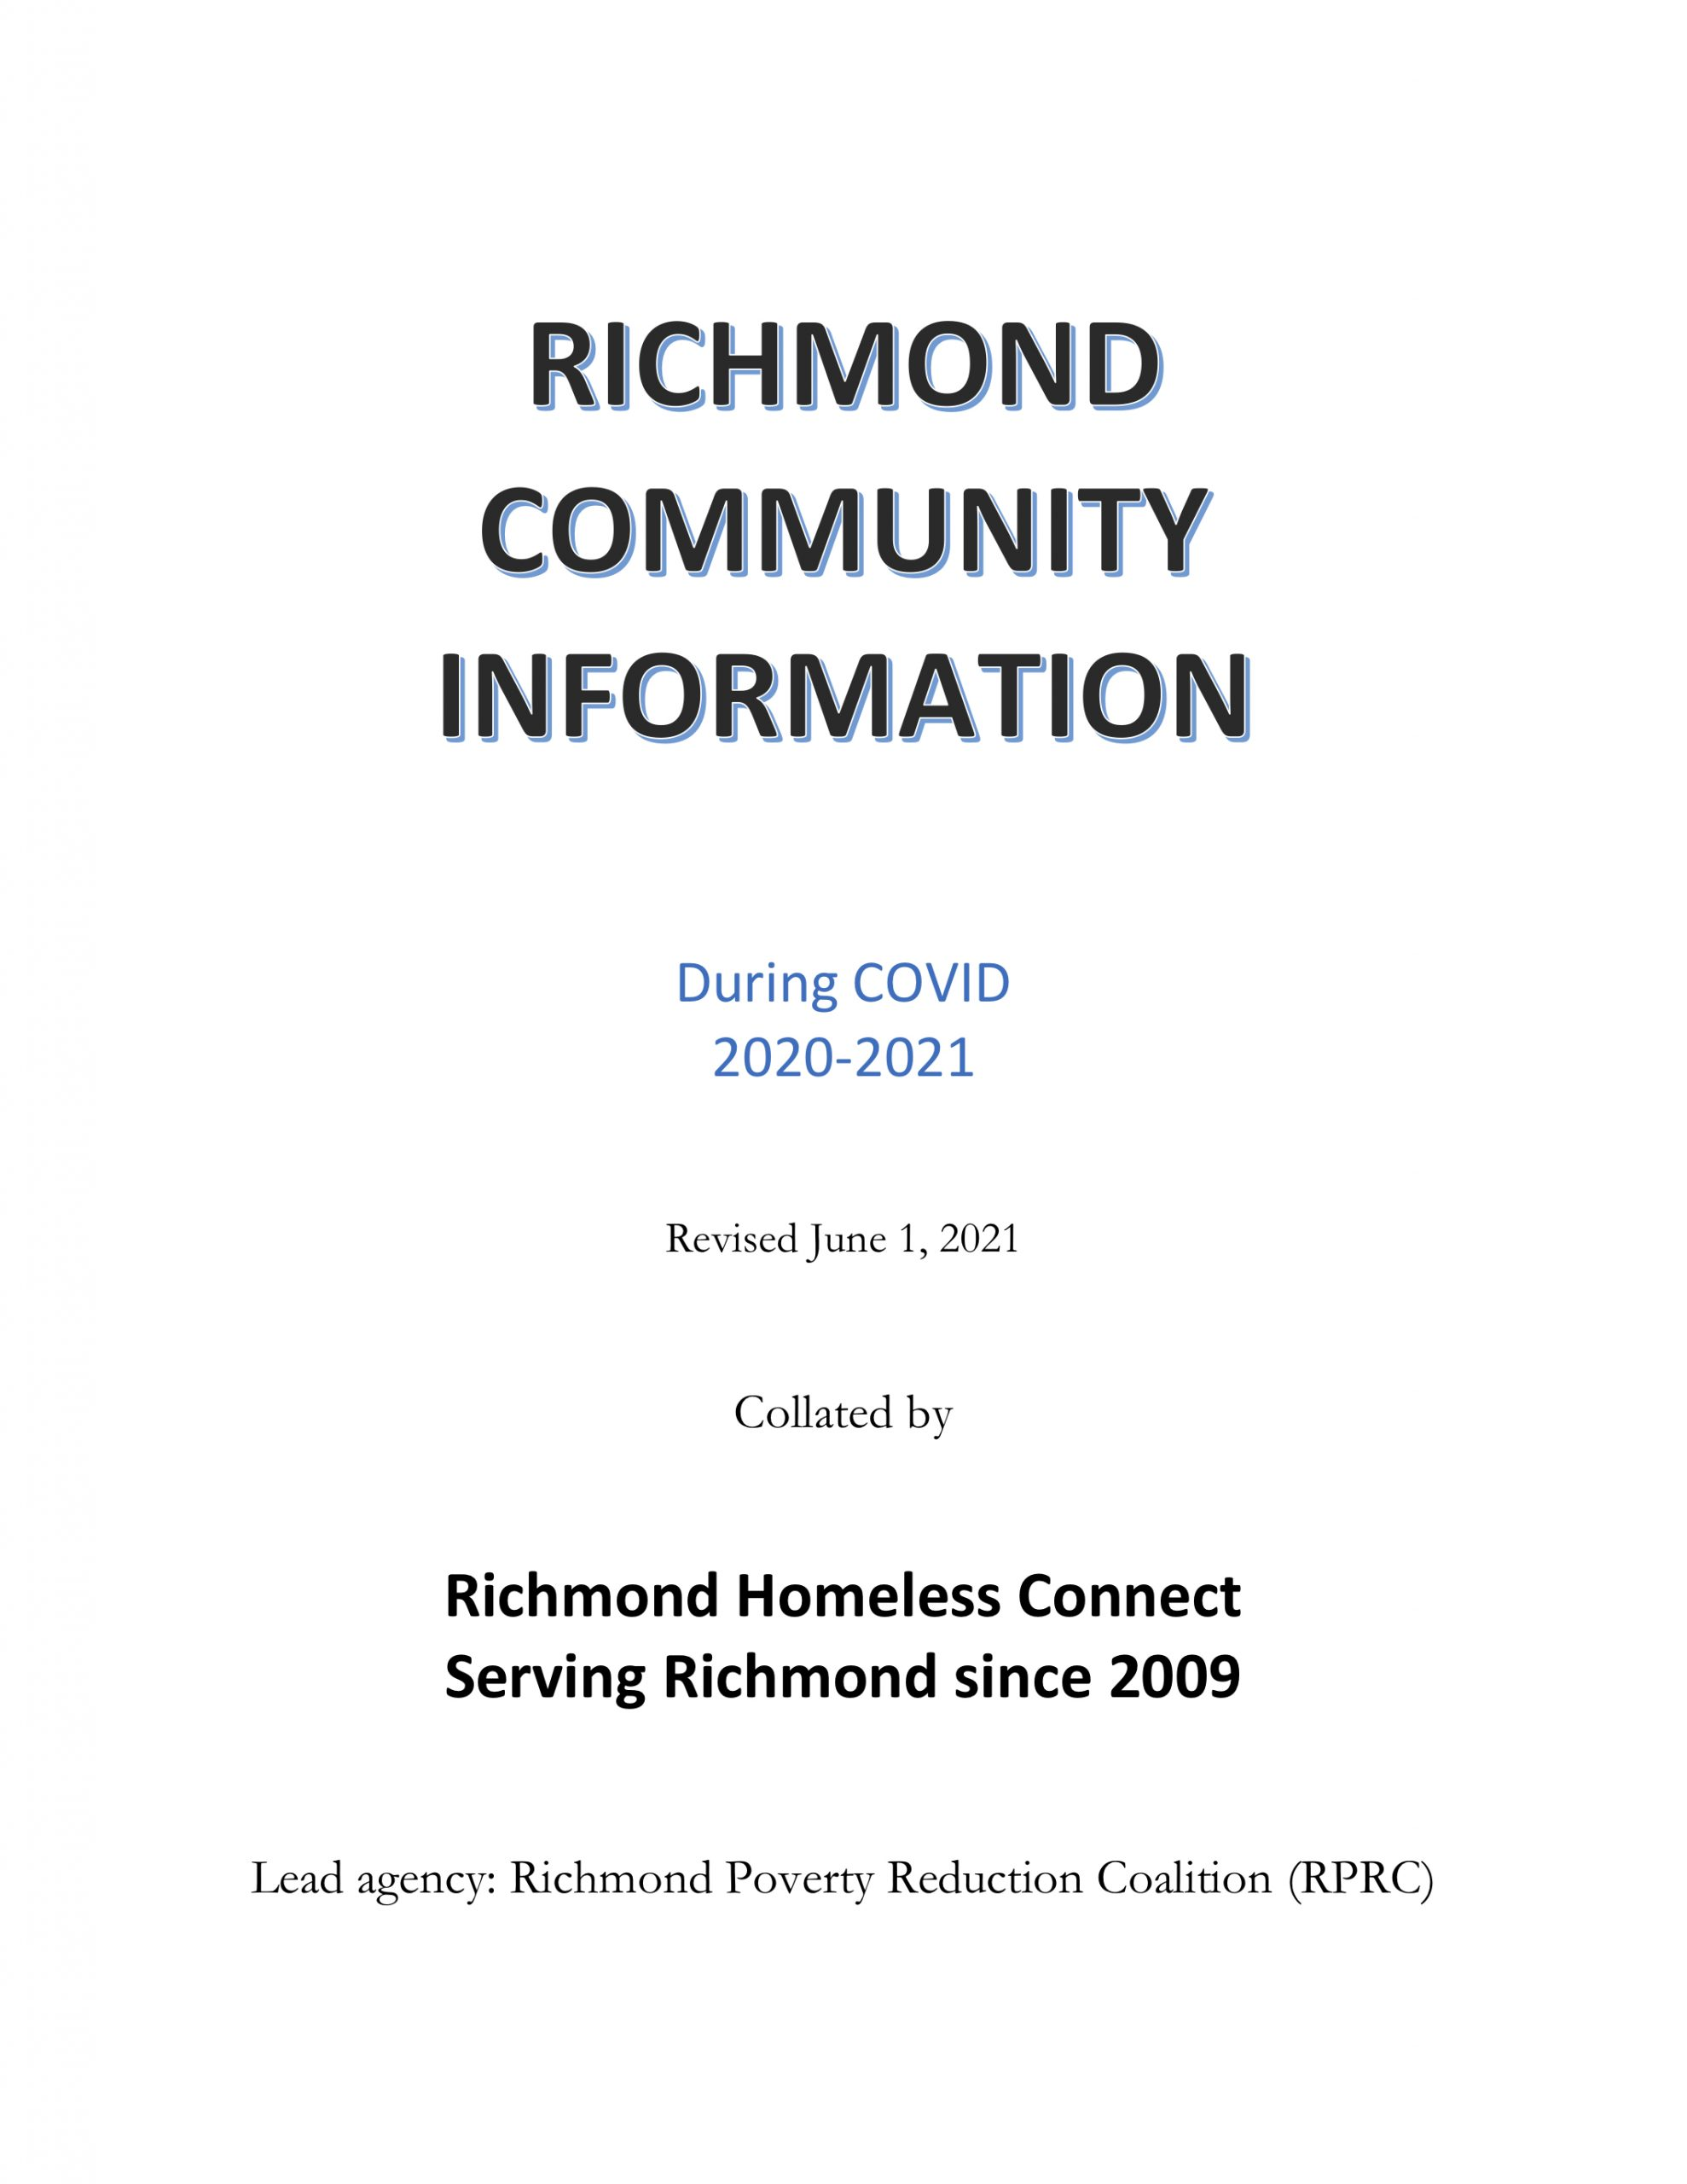 richmond community information during covid booklet